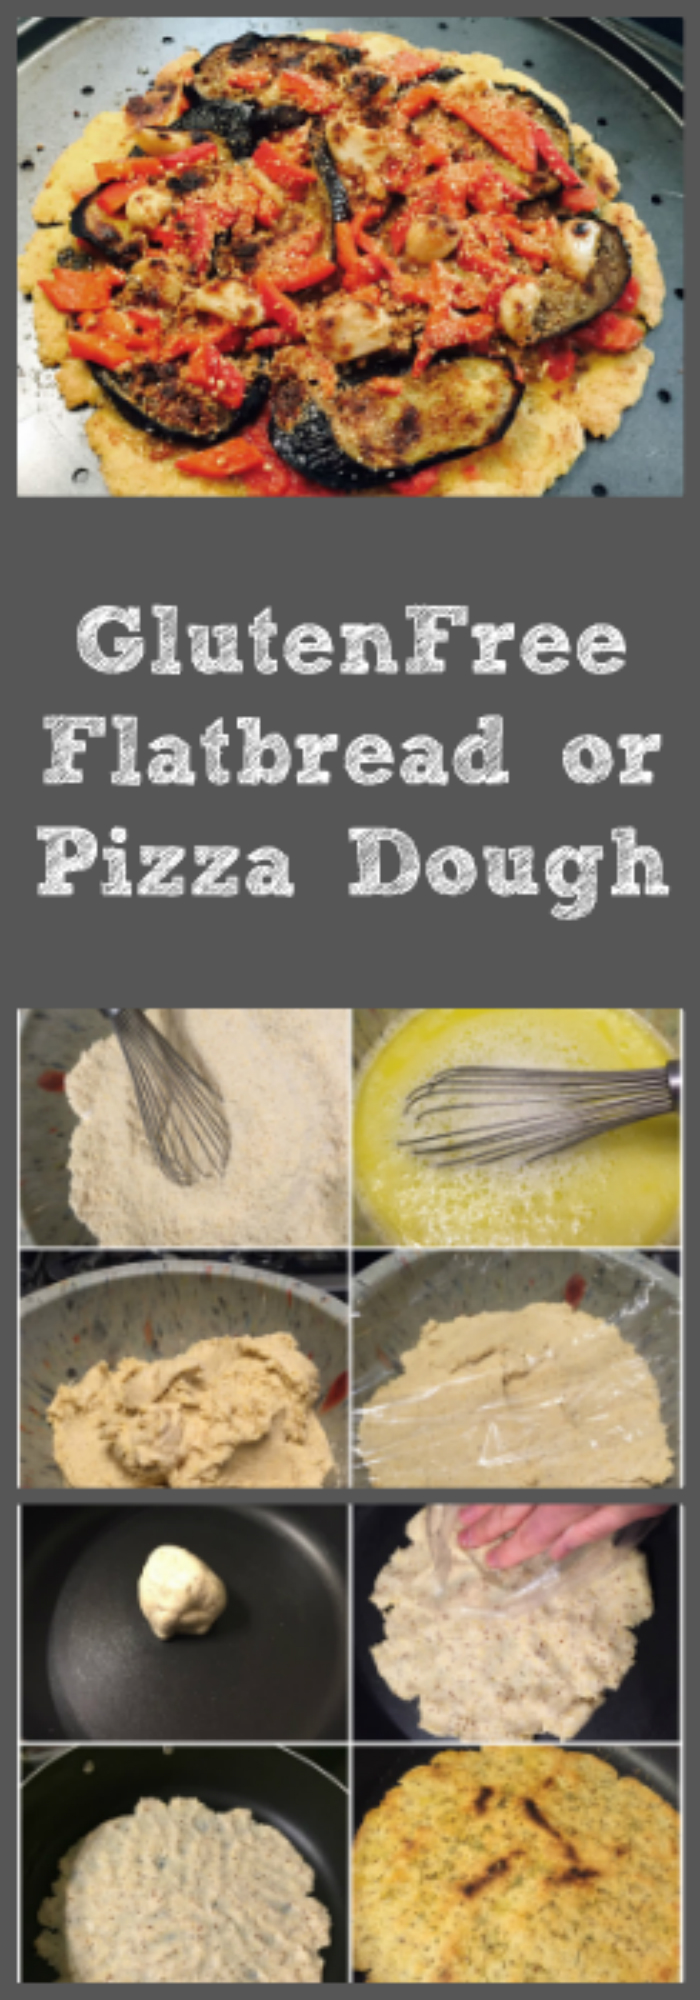 Gluten-free make-ahead-and-freeze flatbread or pizza dough, from The Perfect Pantry.